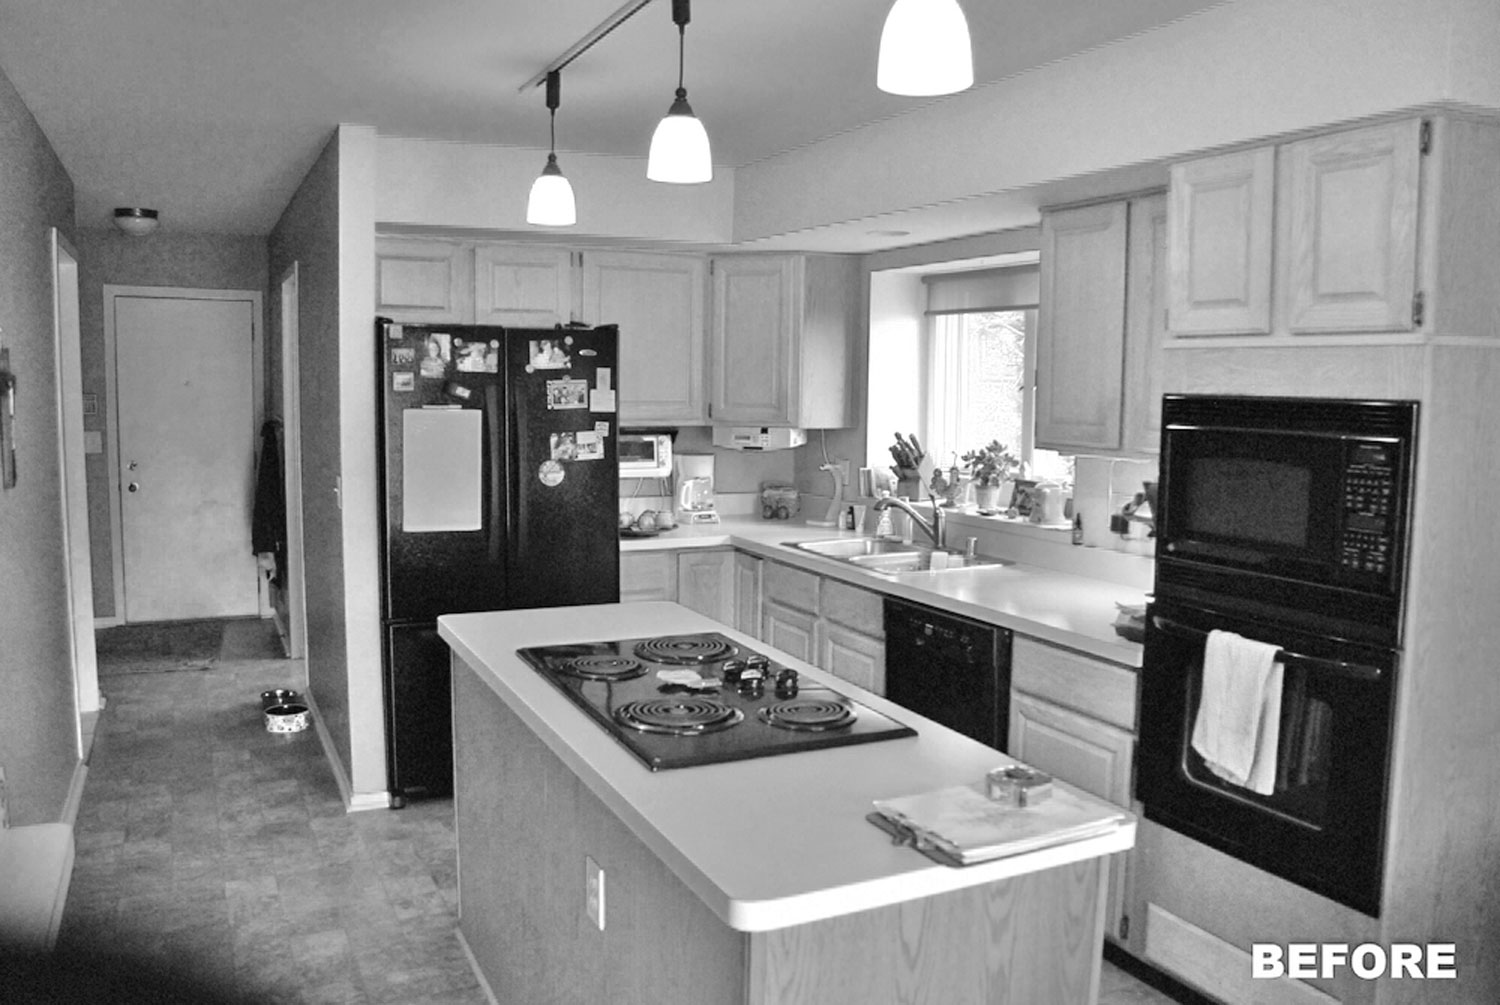 Home Renovation Before Image